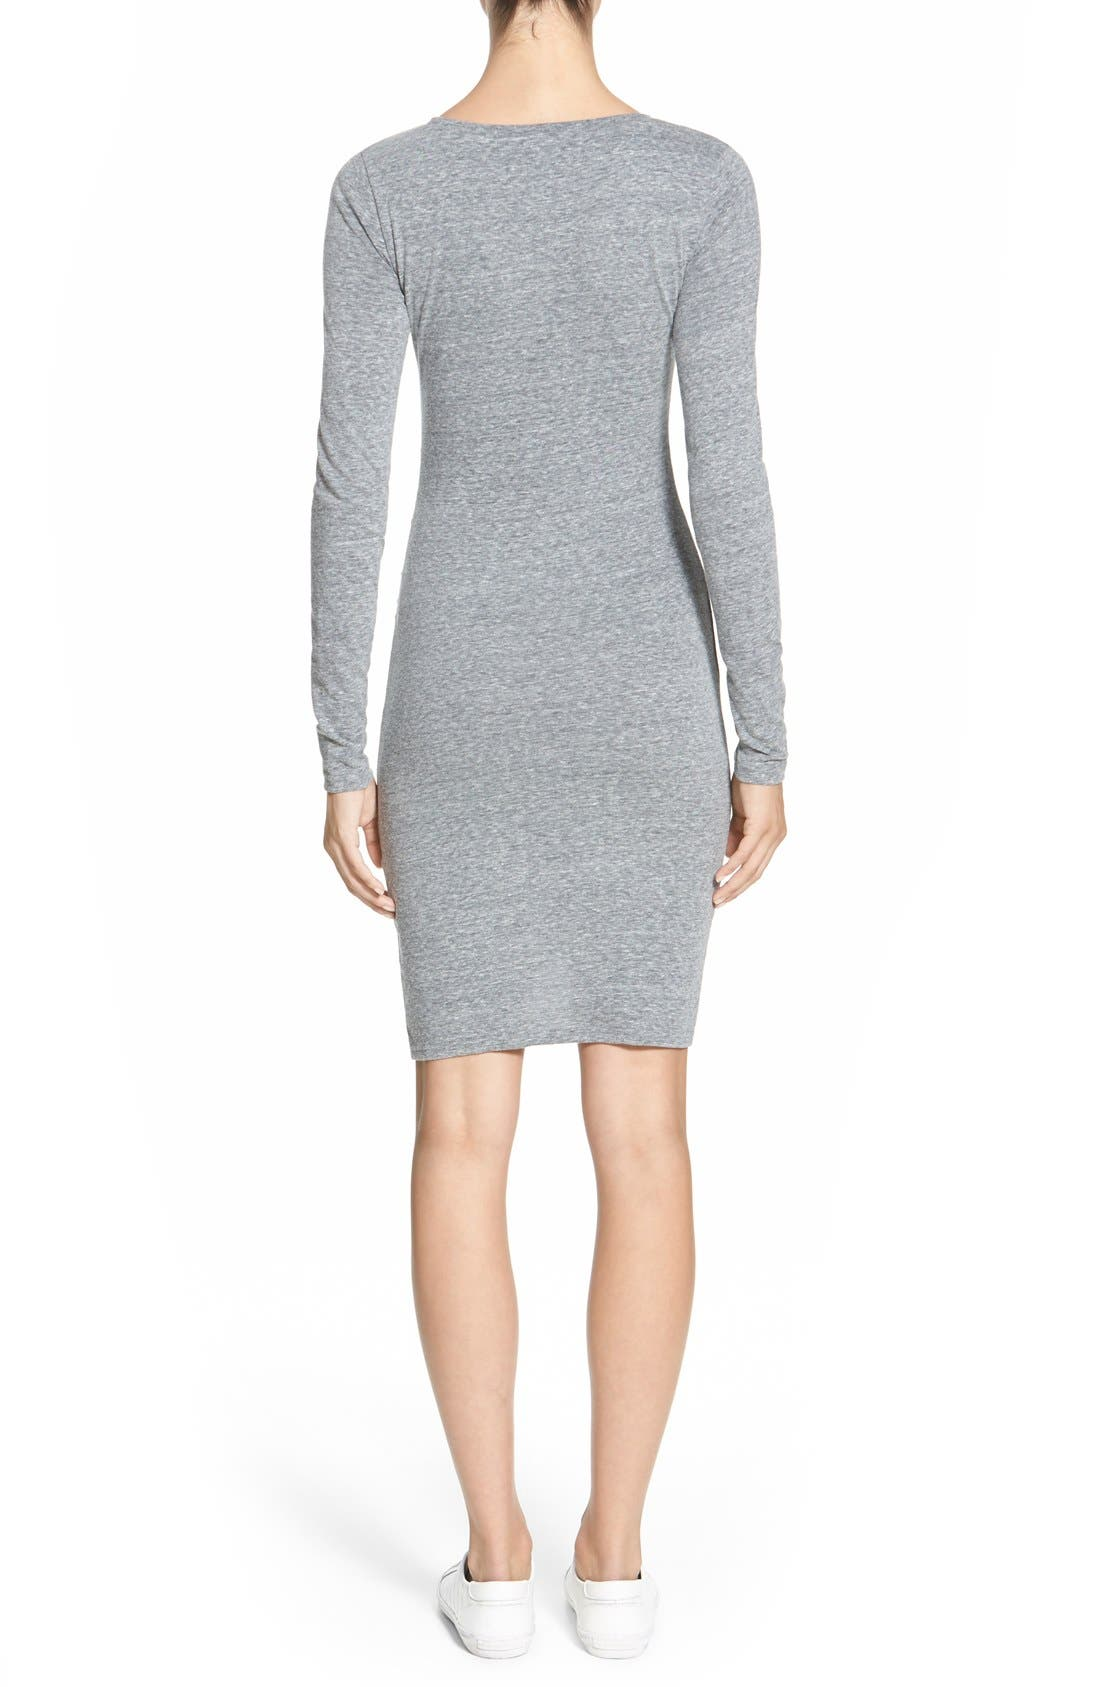 Womens grey dresses nordstrom ombrellifo Gallery